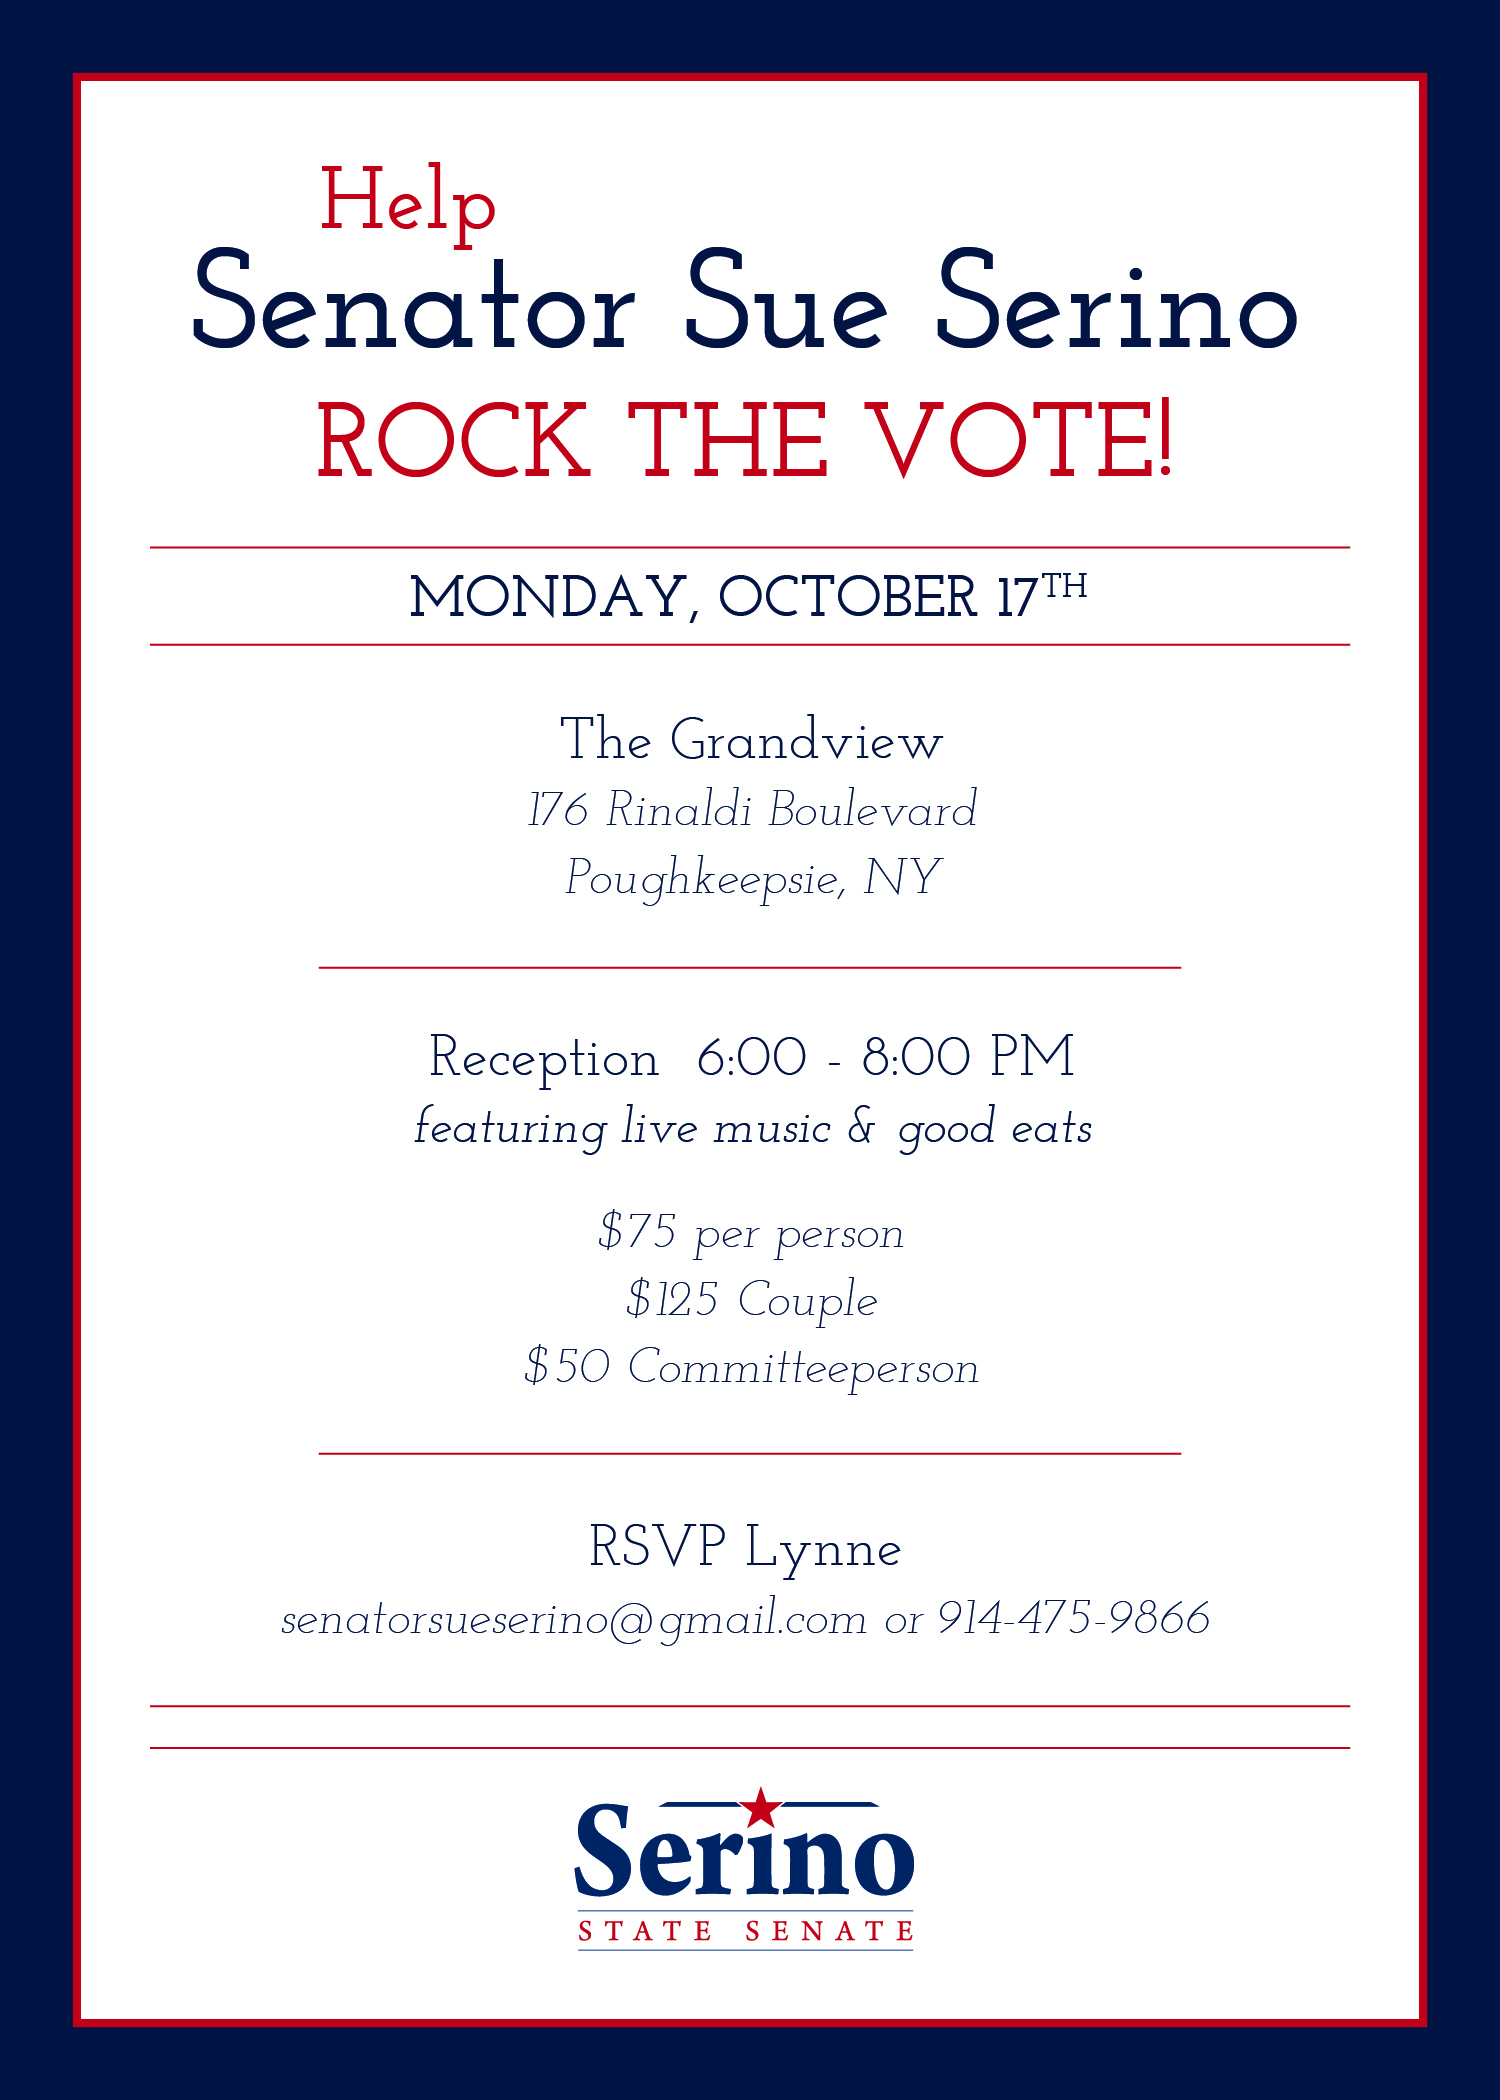 general_Serino_Fundraiser_Invite_v2.jpg